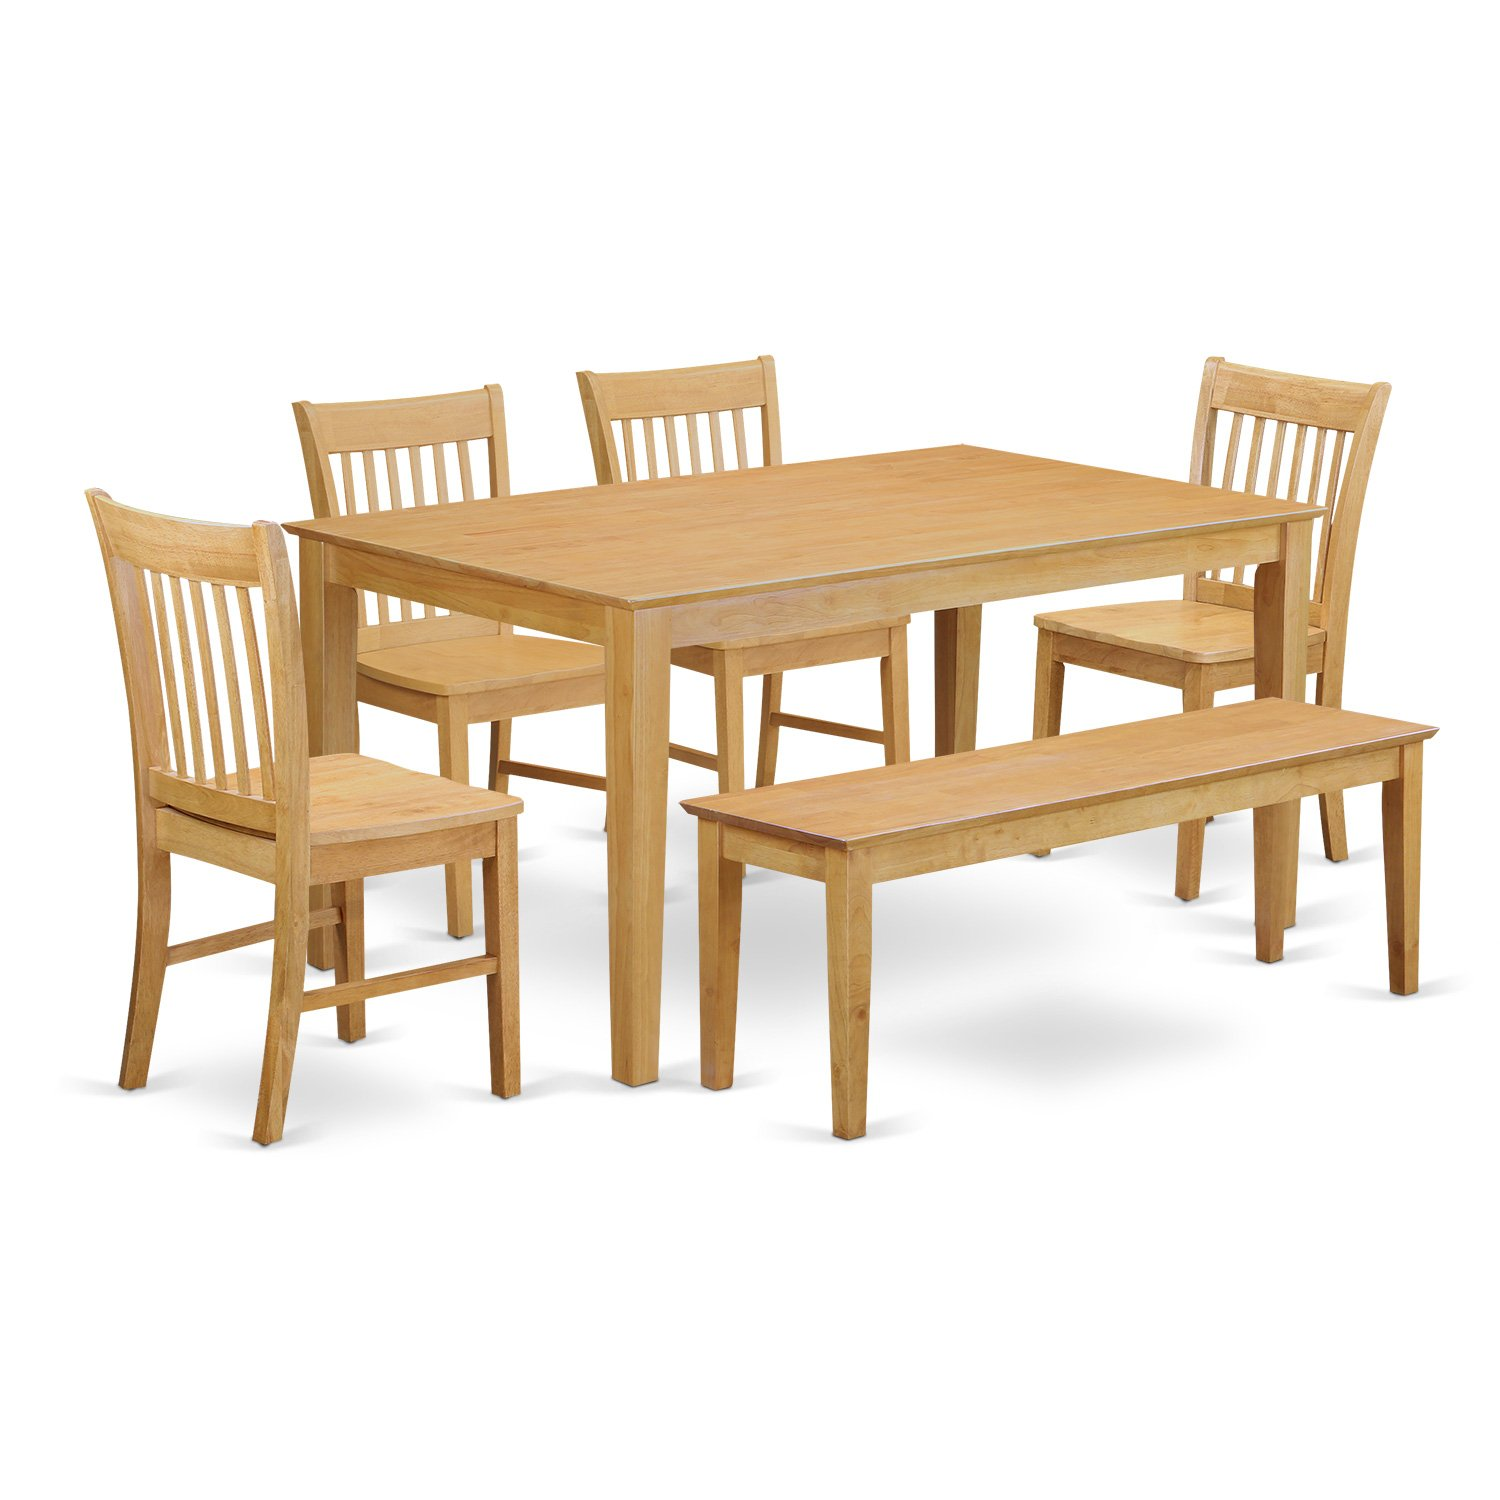 amazon com east west furniture cano6 oak w 6 piece dining table amazon com east west furniture cano6 oak w 6 piece dining table set kitchen dining